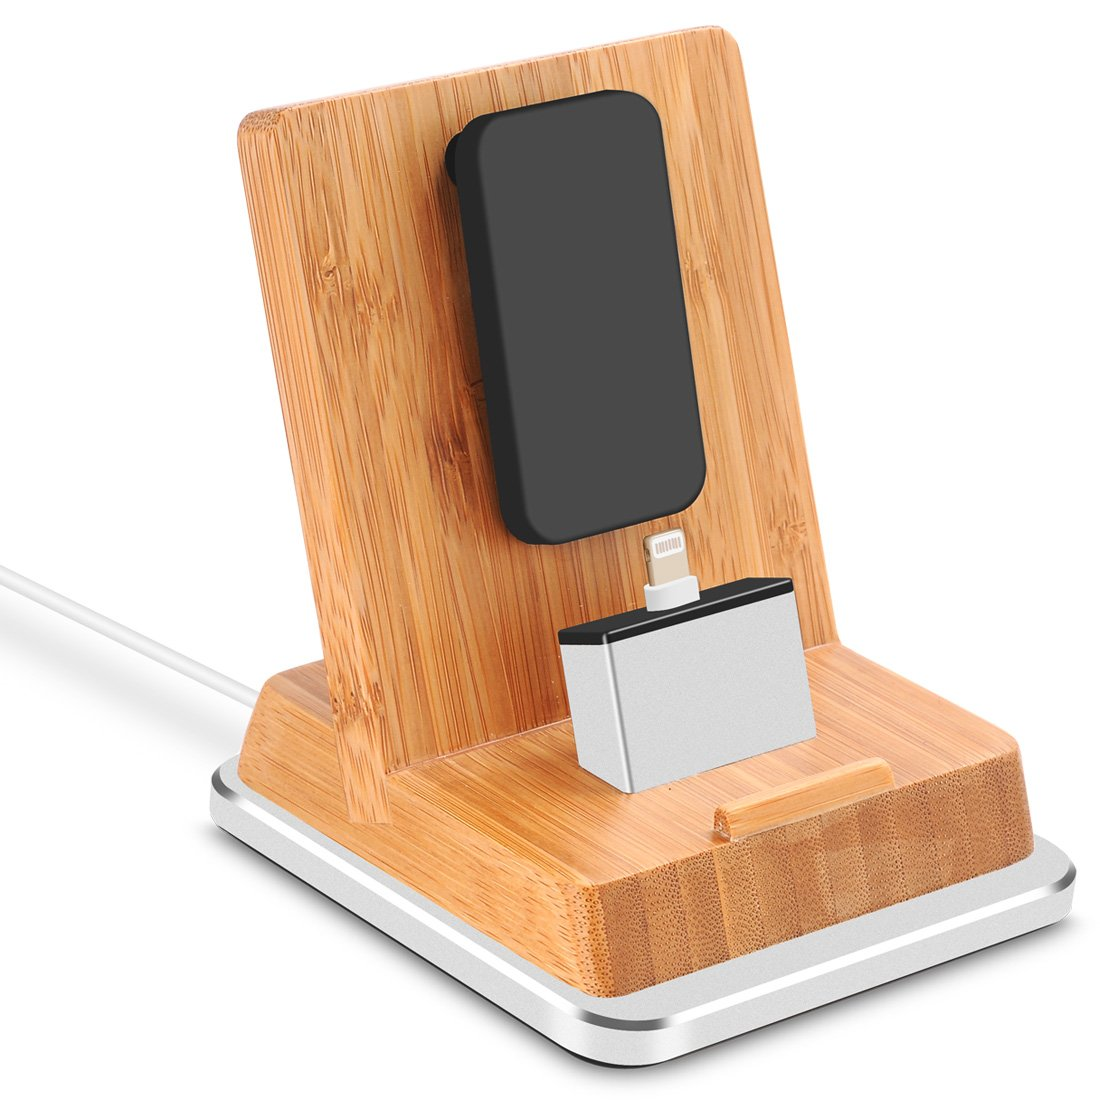 Rerii Bamboo Charge Stand with Aluminum Base, iPhone Charging Dock, iPhone Charger, Stand for iPhone 8, 8 Plus, iPhone X, iPhone 7, 7 Plus, 6, 6 Plus, iPad Air, iPad Mini, Support Charging with Case